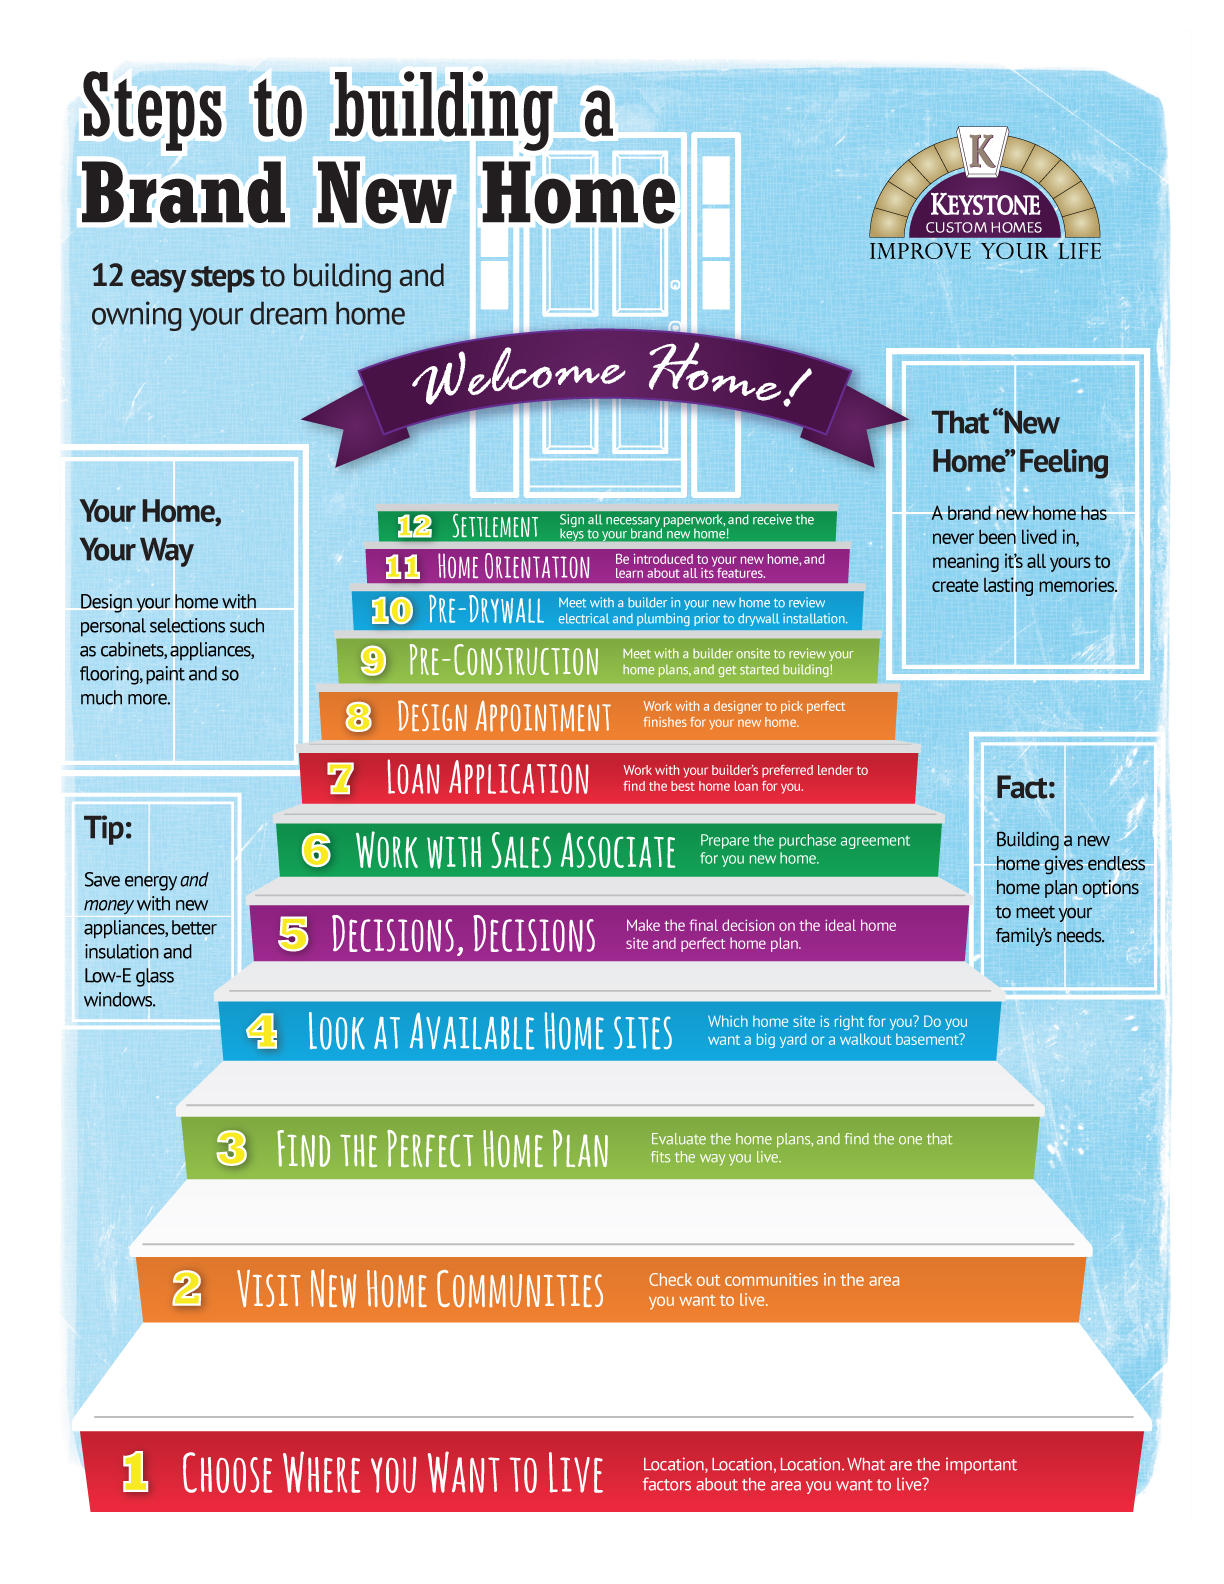 12 steps to build a brand new home infographic